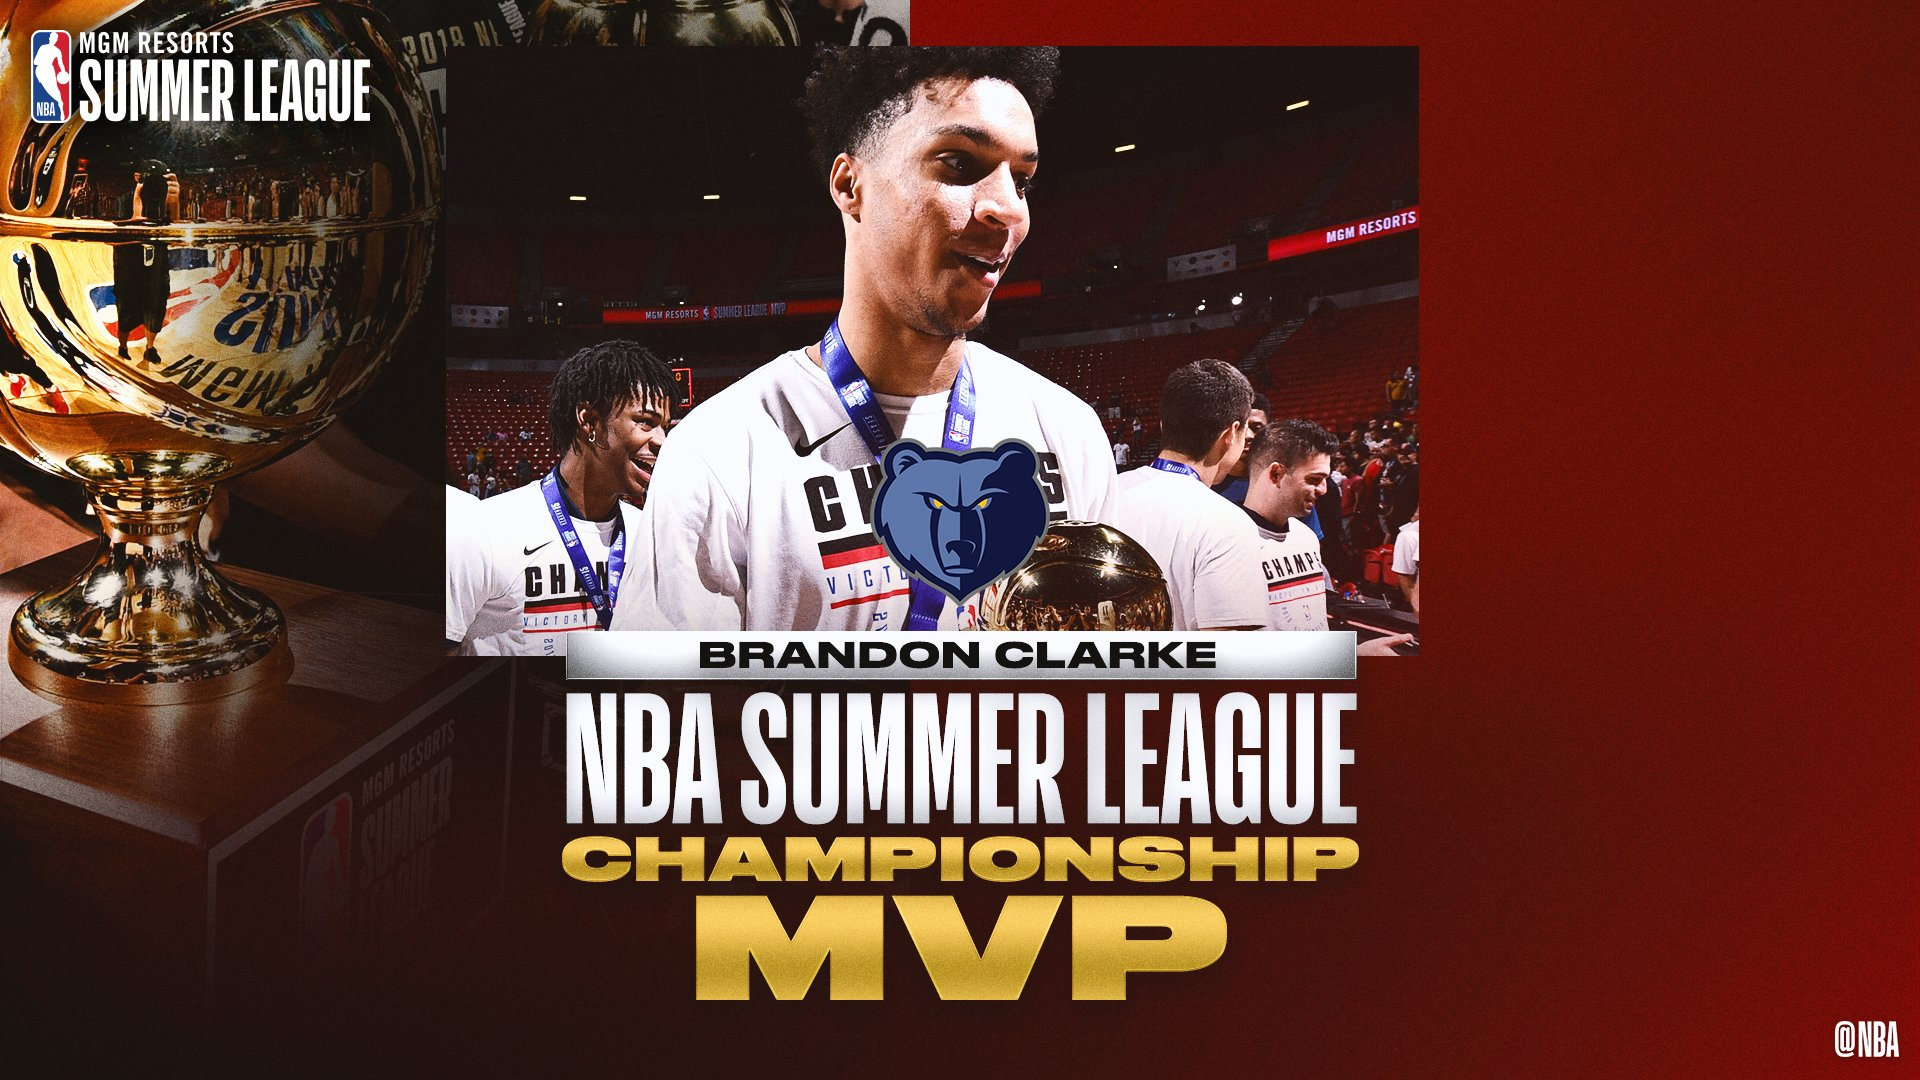 🏆👏🏆   @brandonclarke23 becomes the FIRST PLAYER to win @NBASummerLeague MVP & Championship Game MVP in the same #NBASummer! https://t.co/uoEyQdKyOc